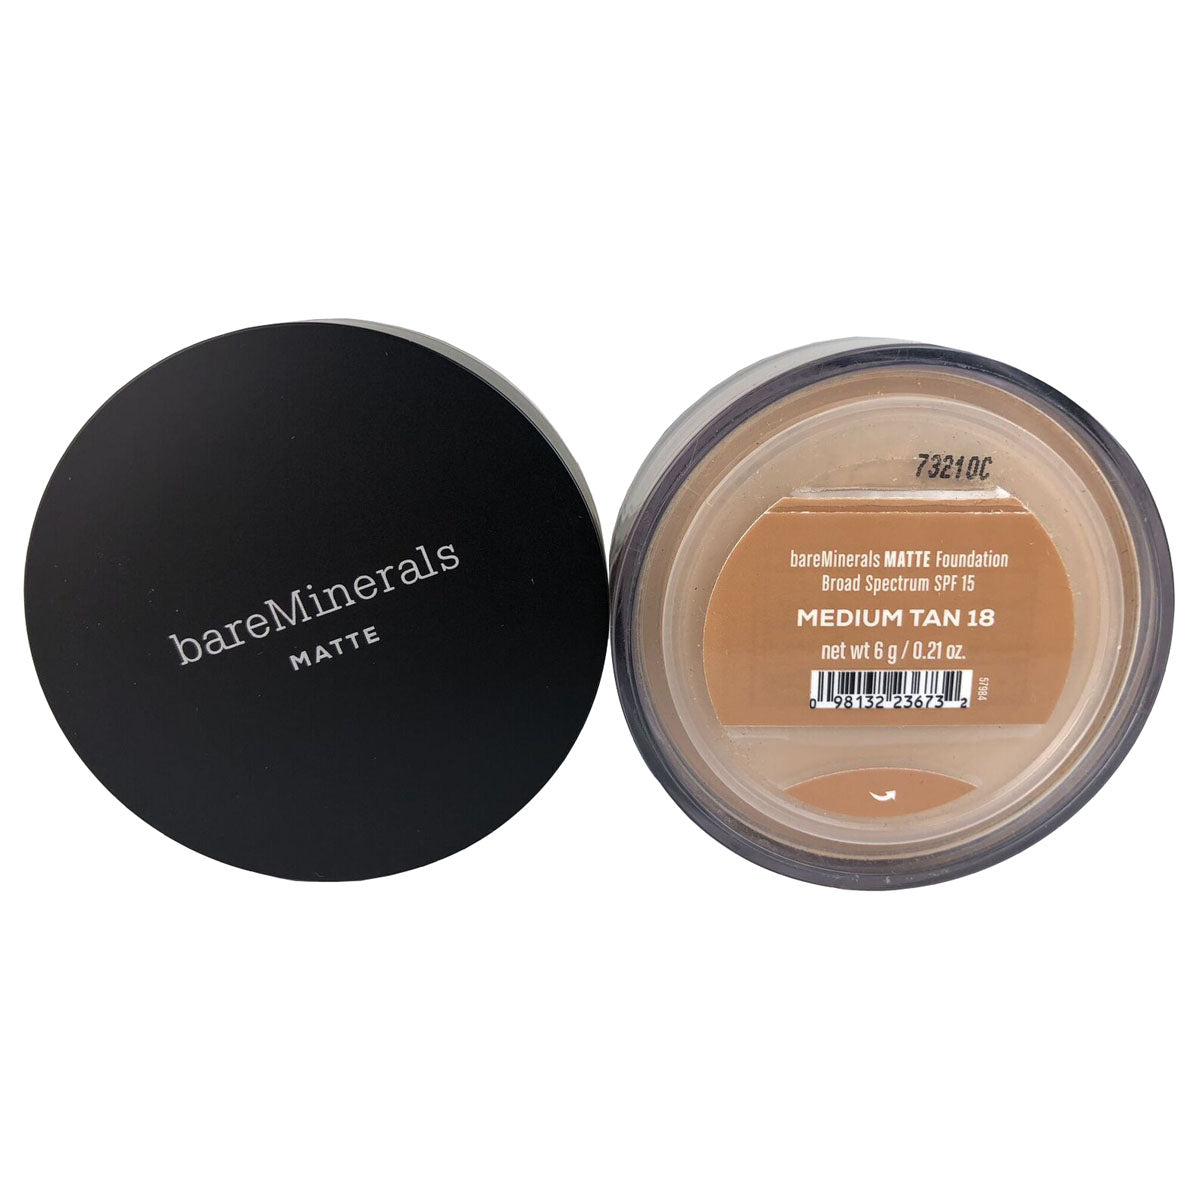 BareMinerals Matte Foundation for Face SPF 15 .21 oz Medium Tan 18